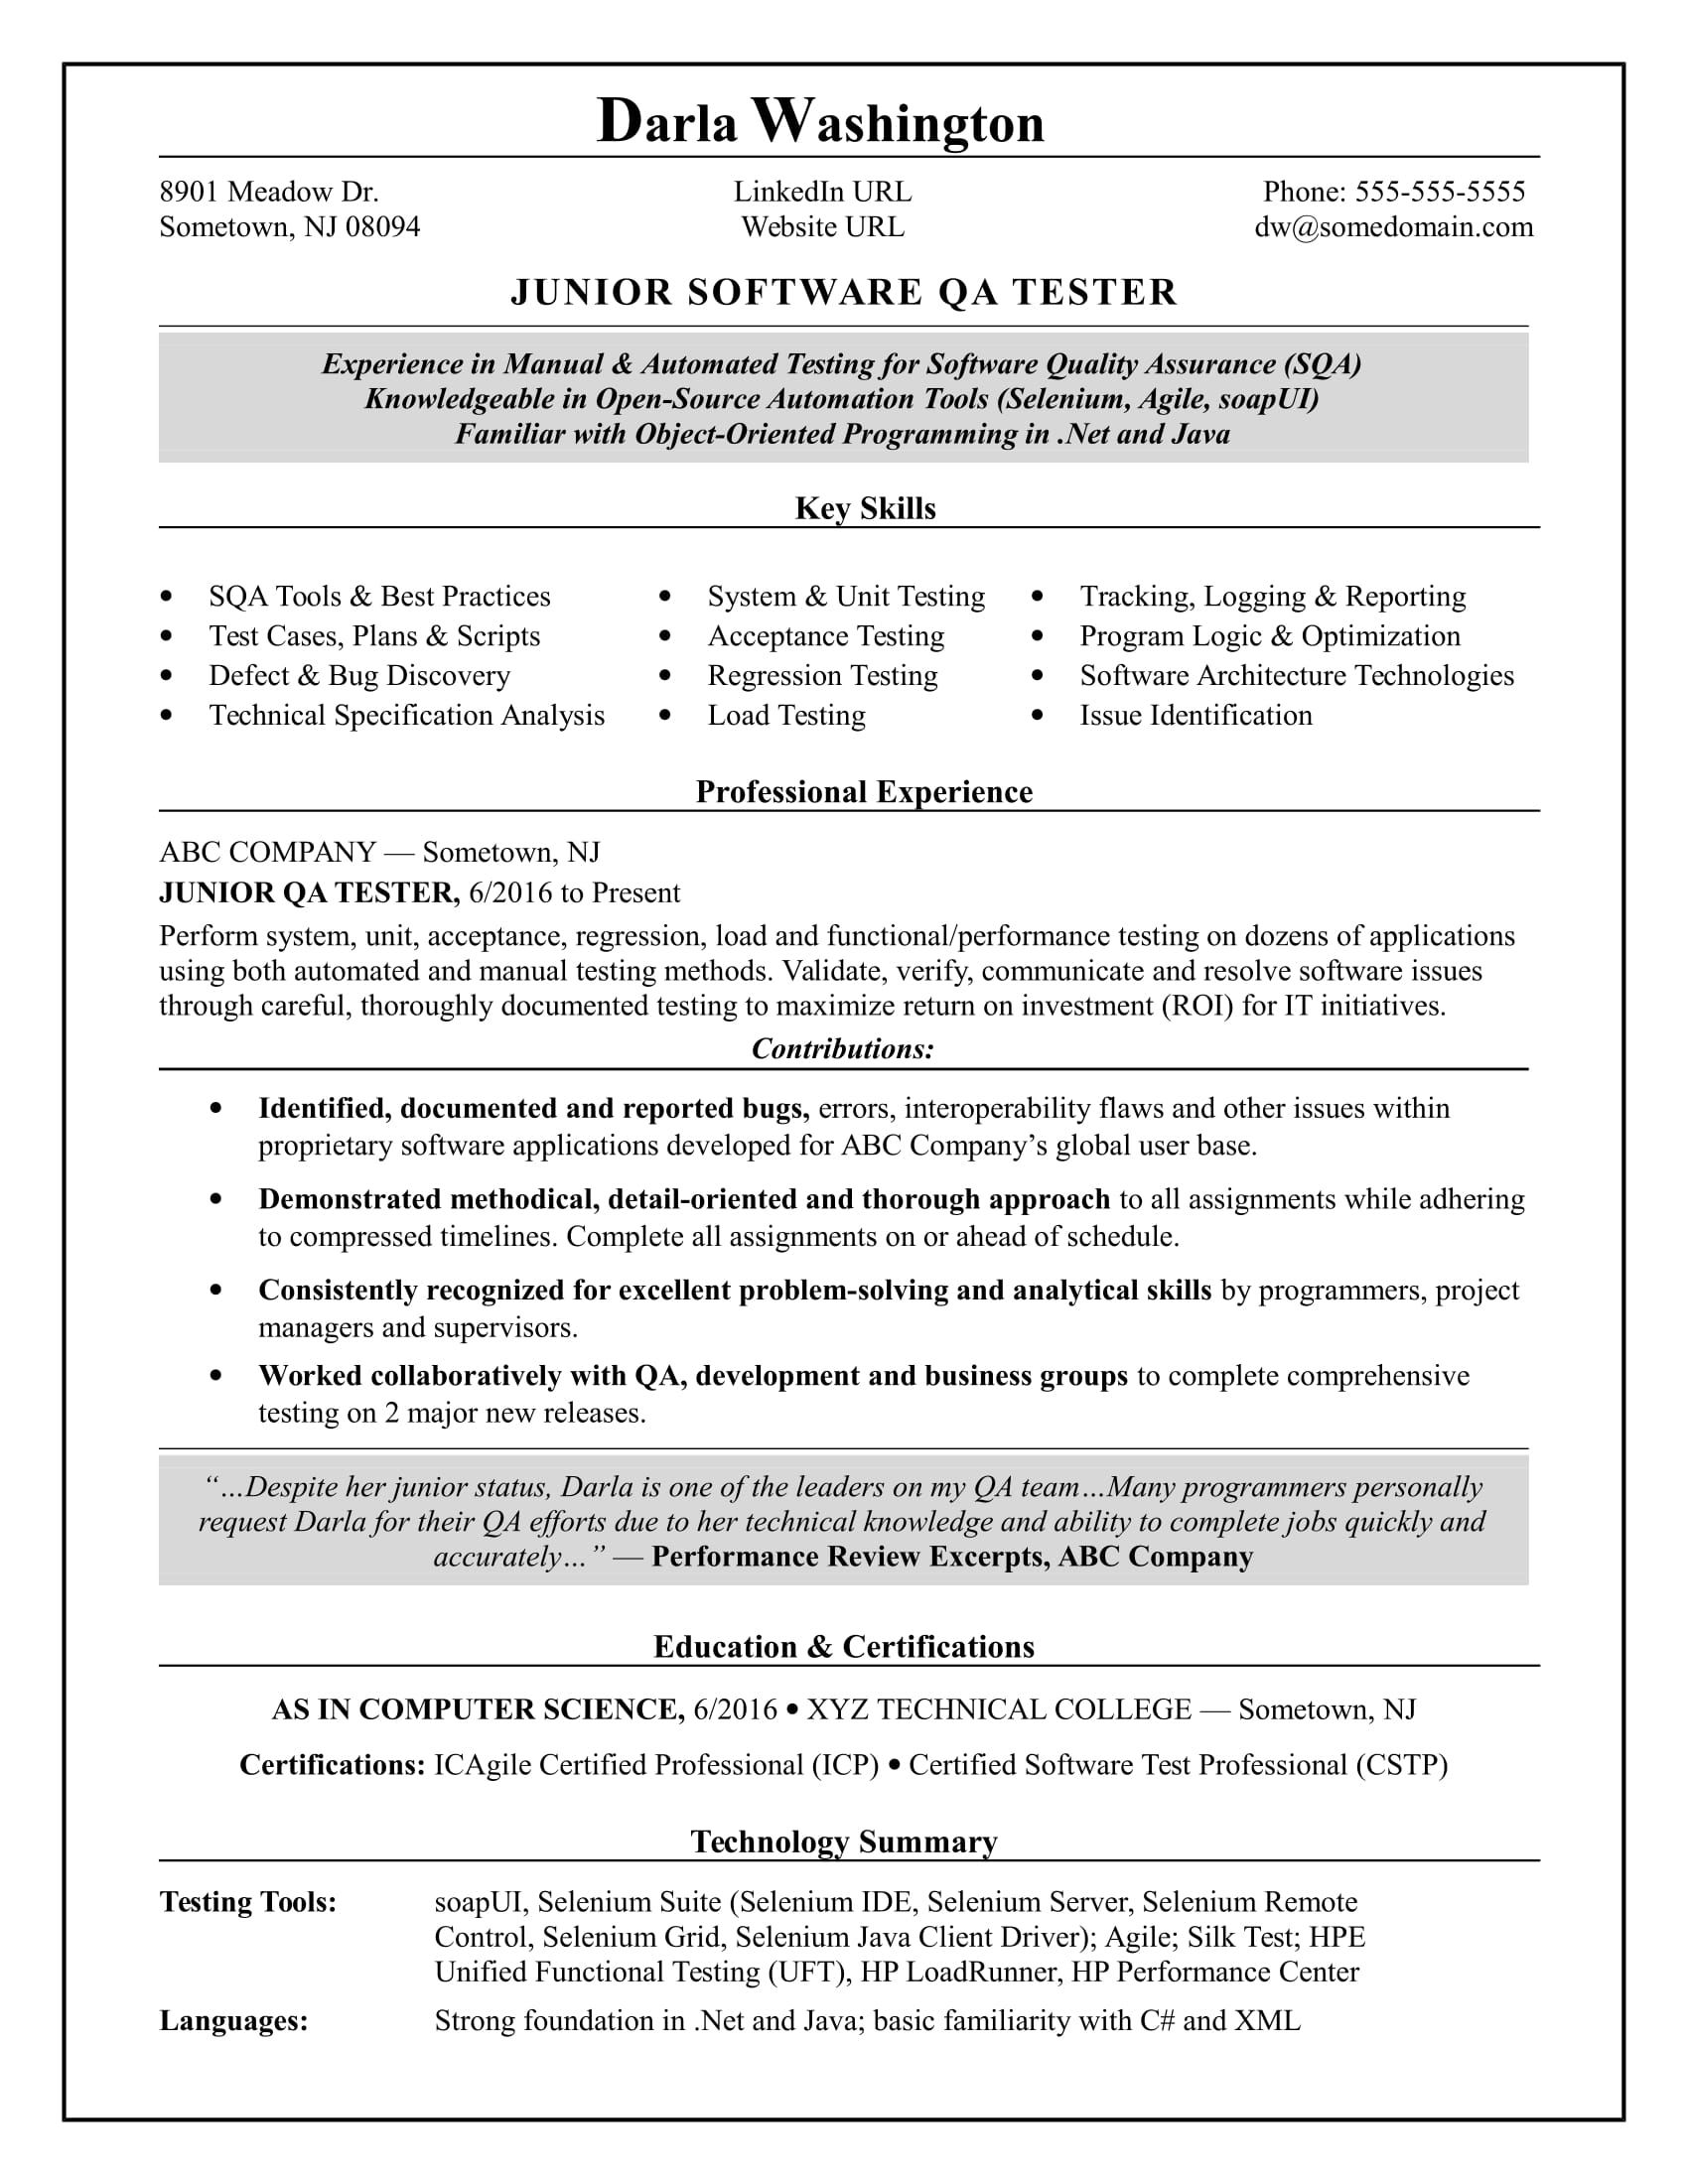 Software Qa Resume Prepossessing Experienced Qa Software Tester Resume Sample  Resume Advice And .